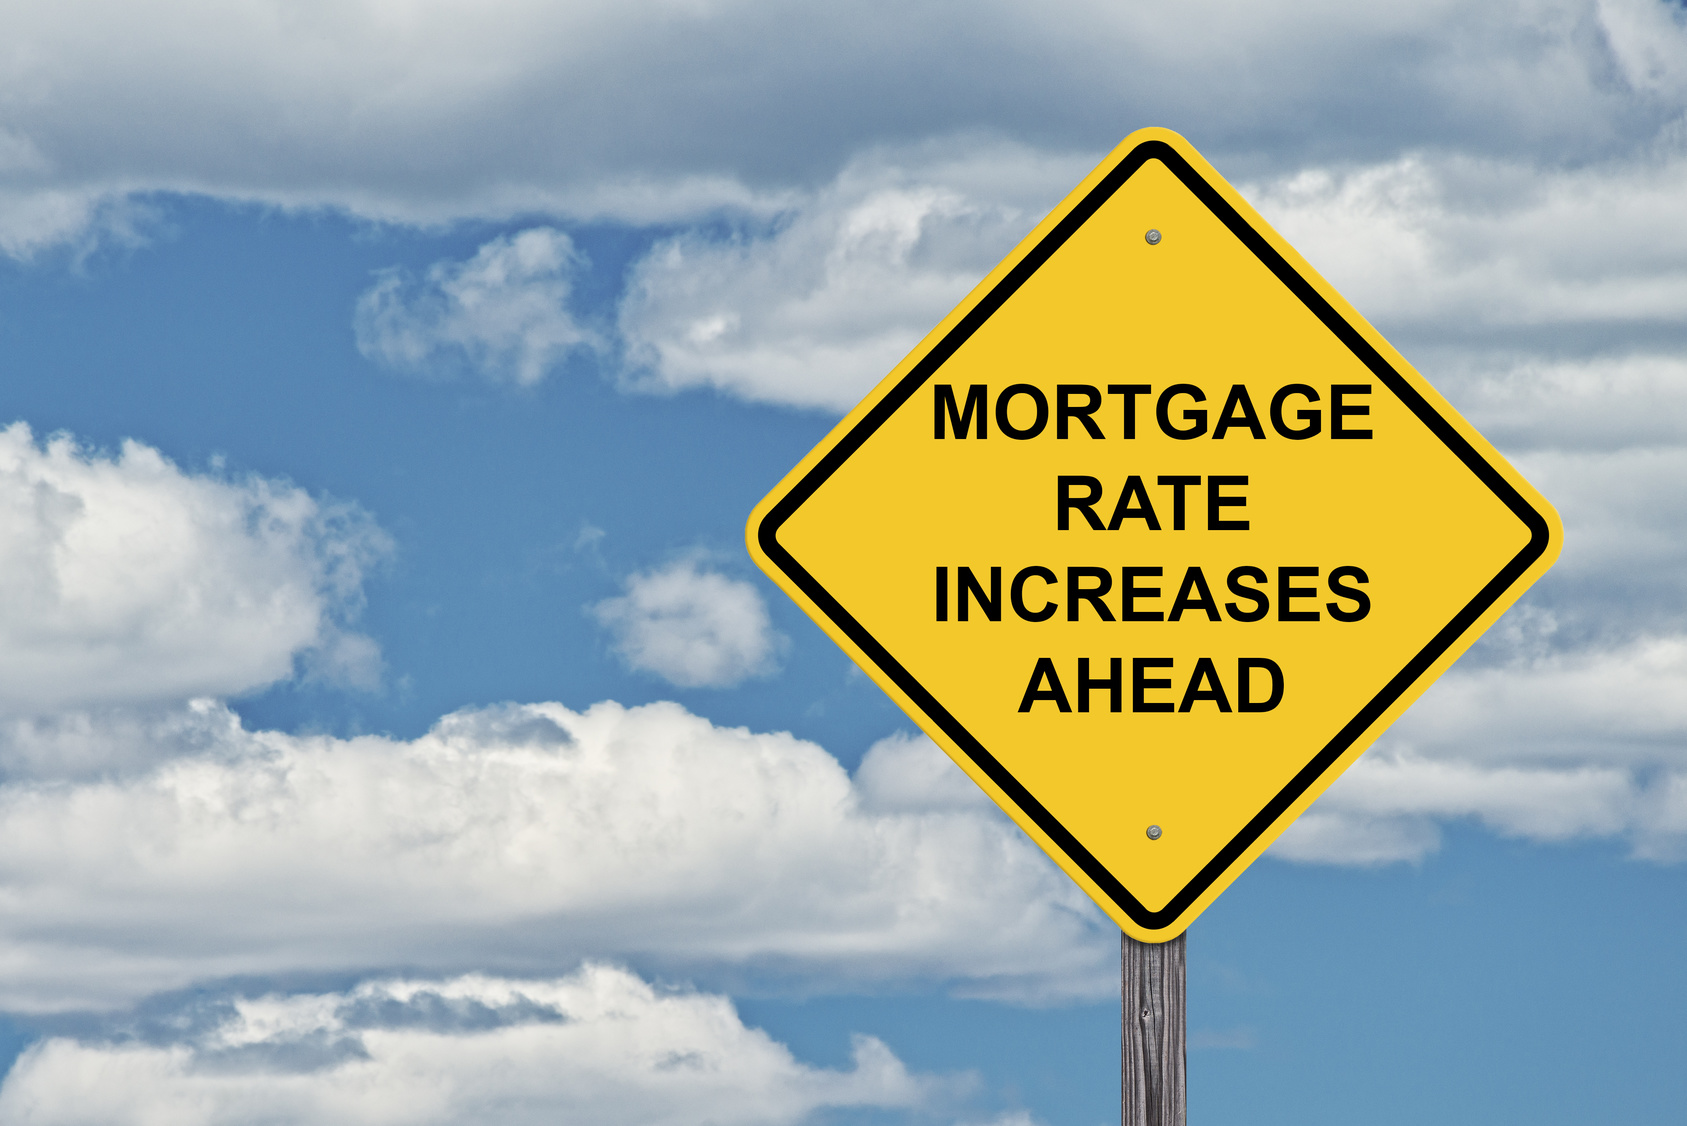 Mortgage rate increases ahead | Morecrofts